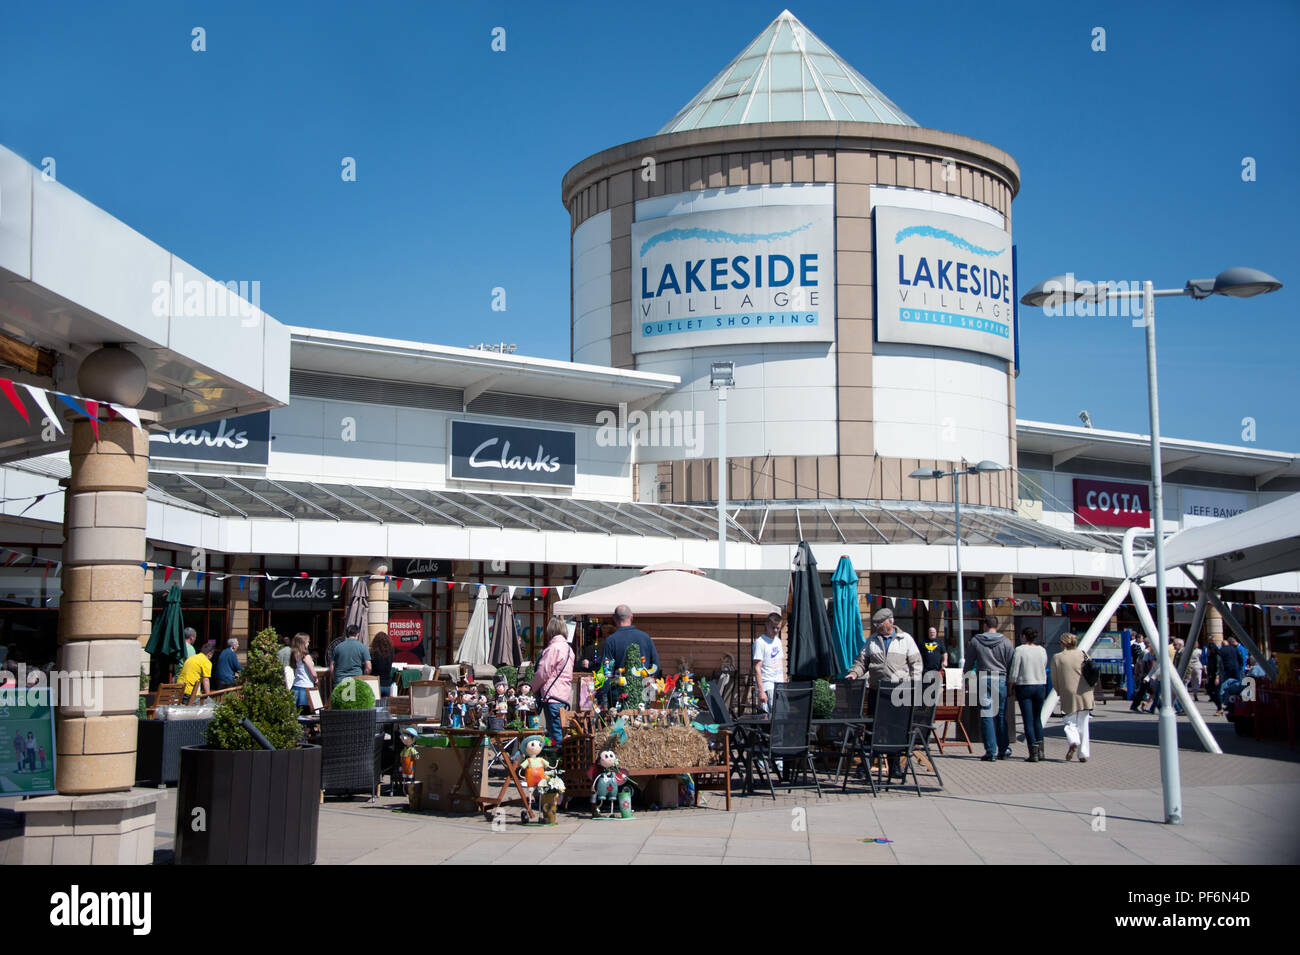 5a45054cf Lakeside Village Outlet Shopping in Doncaster Soiuth Yorkshire UK - Stock  Image